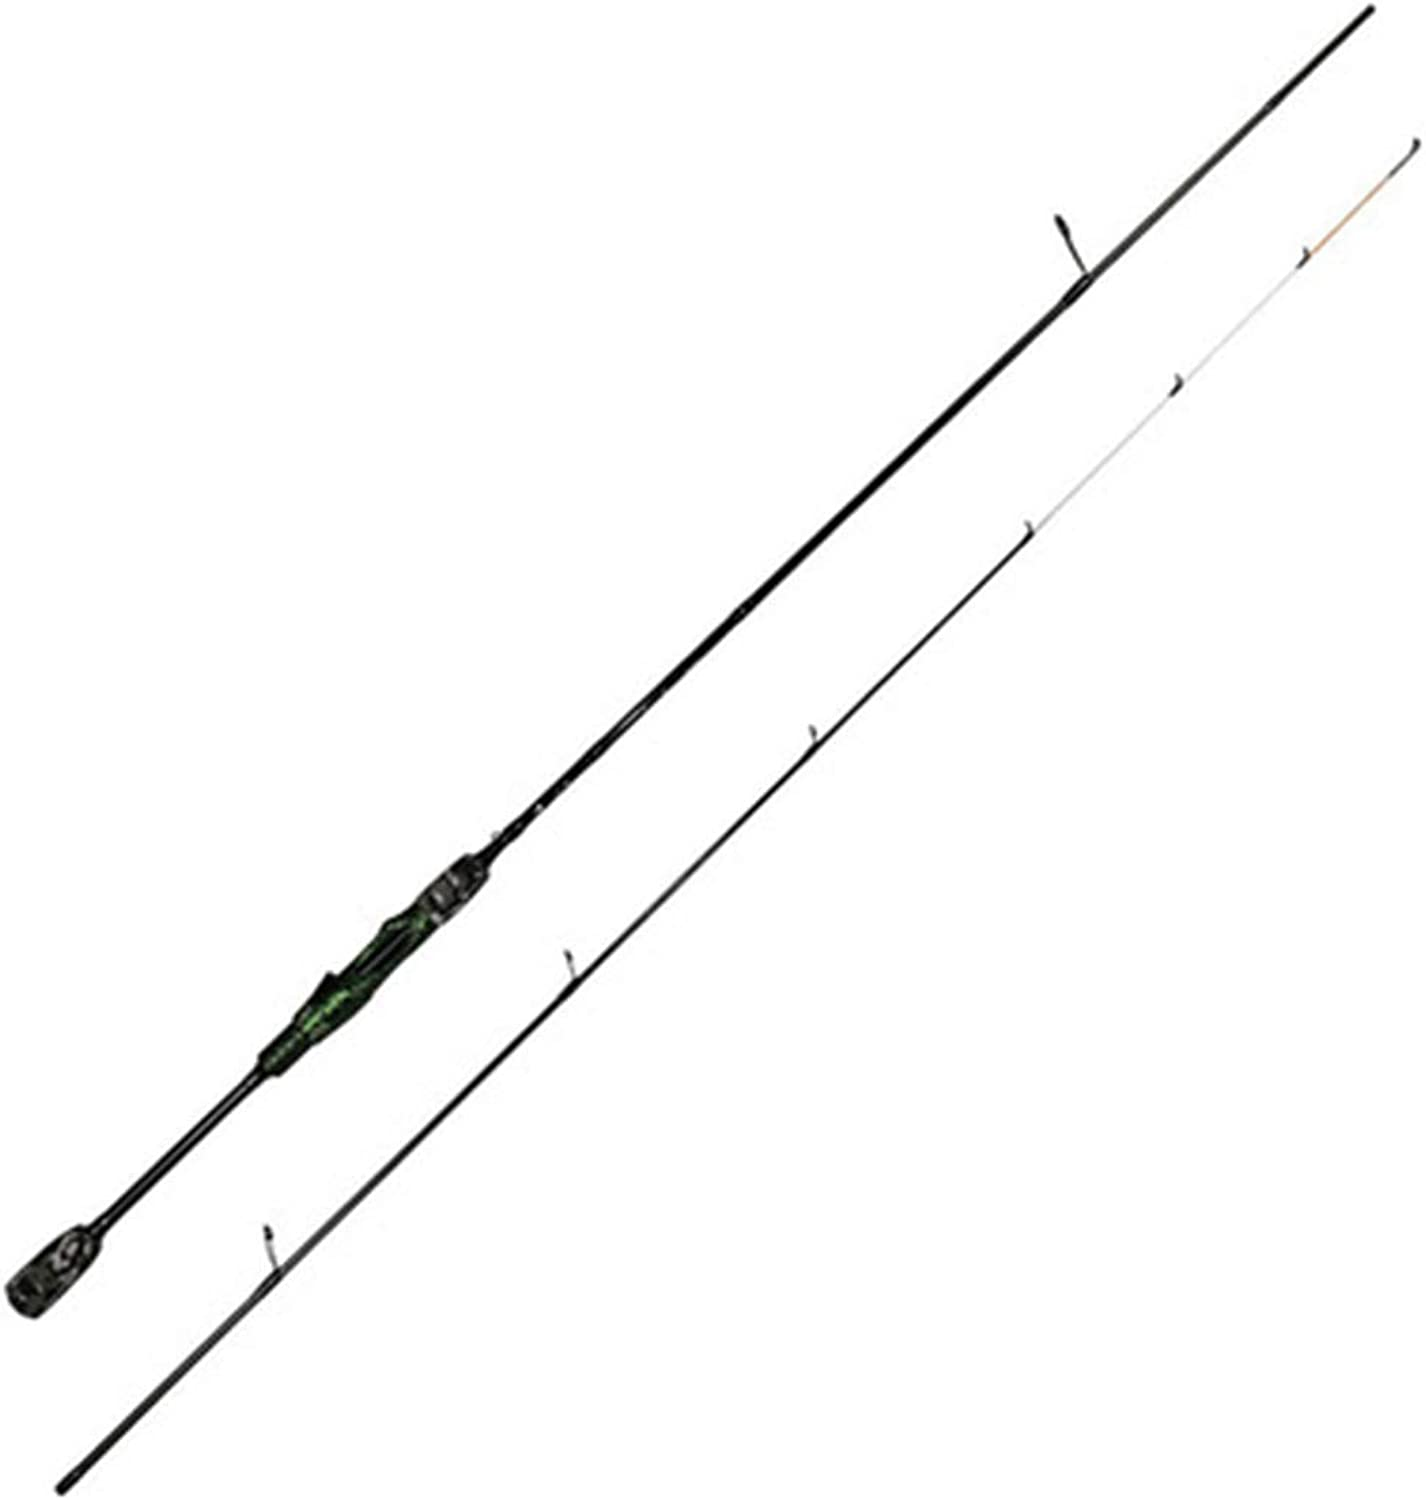 Fishing Rod, Horse Mouth Rod UL Super Soft, Carbon, Straight Shank, Lu Ya Rod 1.95 2.1 2.25 Meters